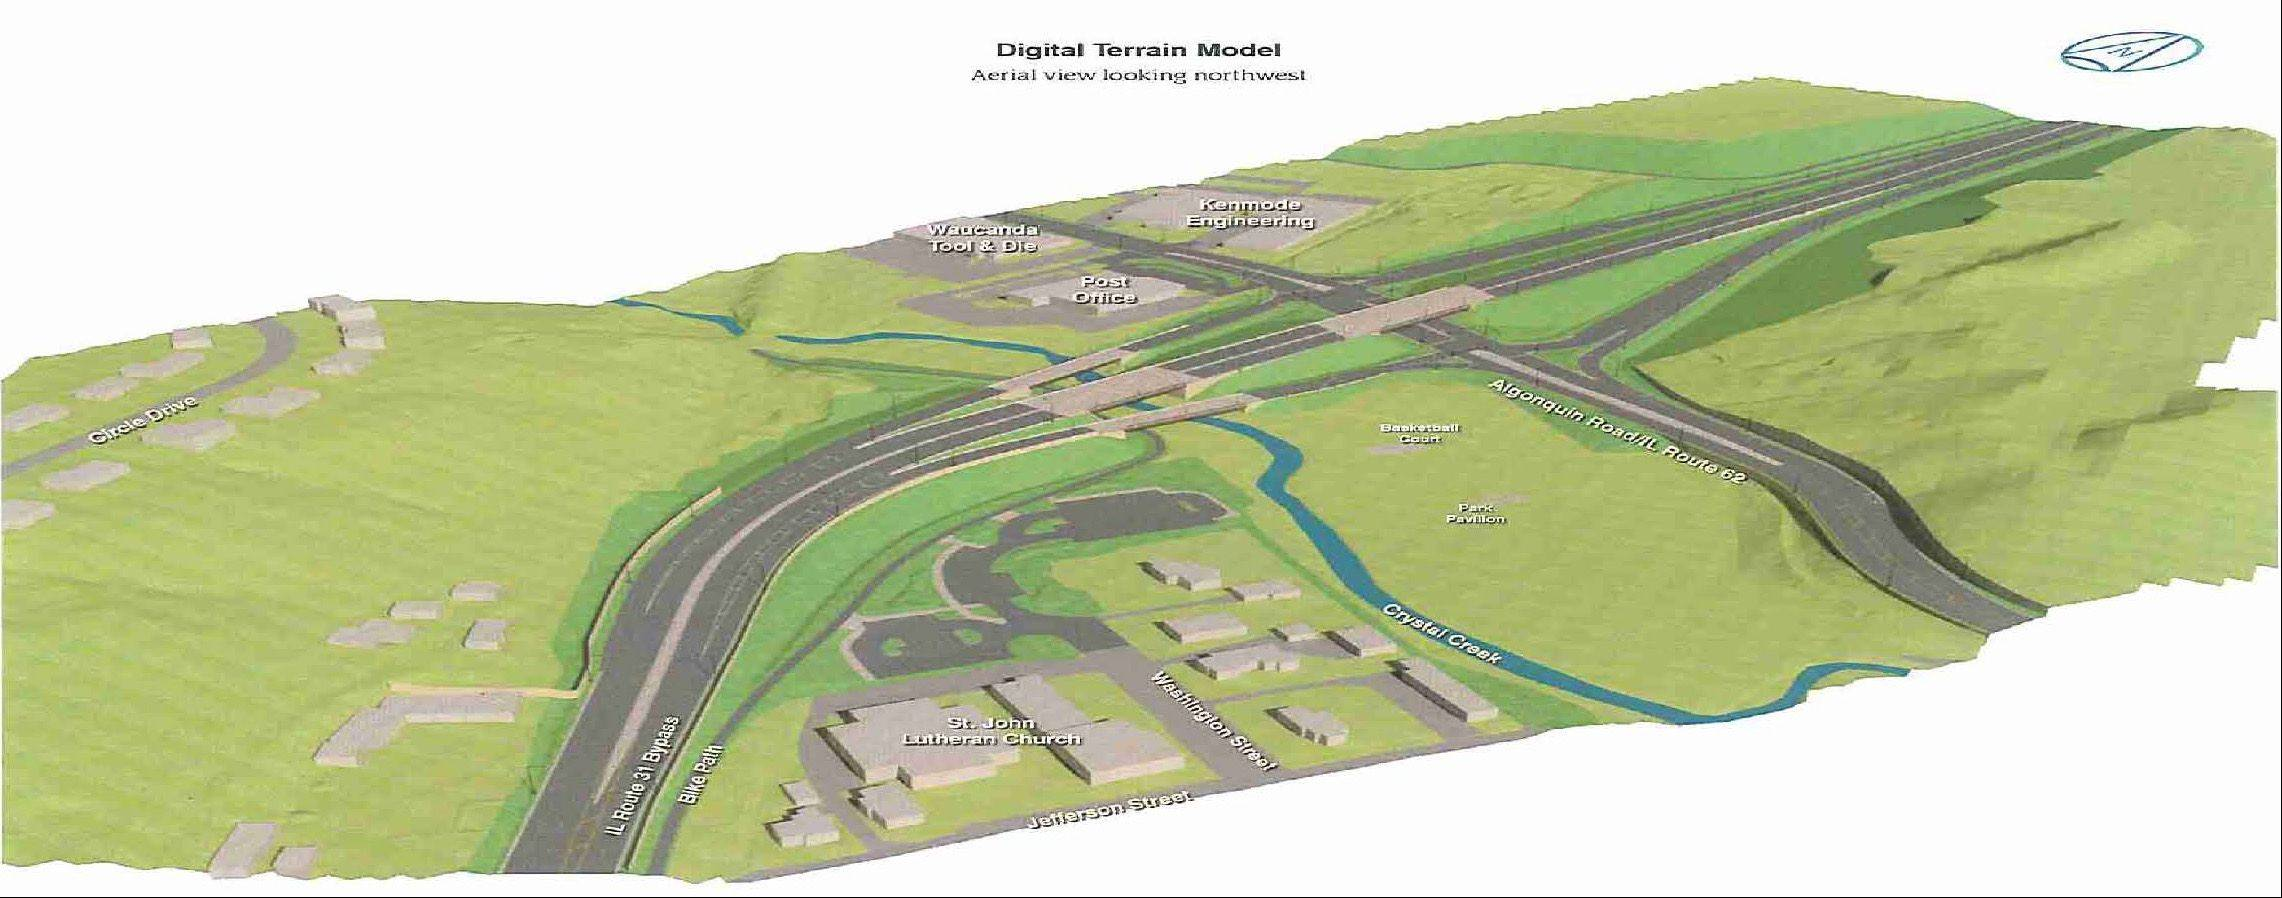 A digital terrain model of the so-called Western Bypass of Route 31 in downtown Algonquin.